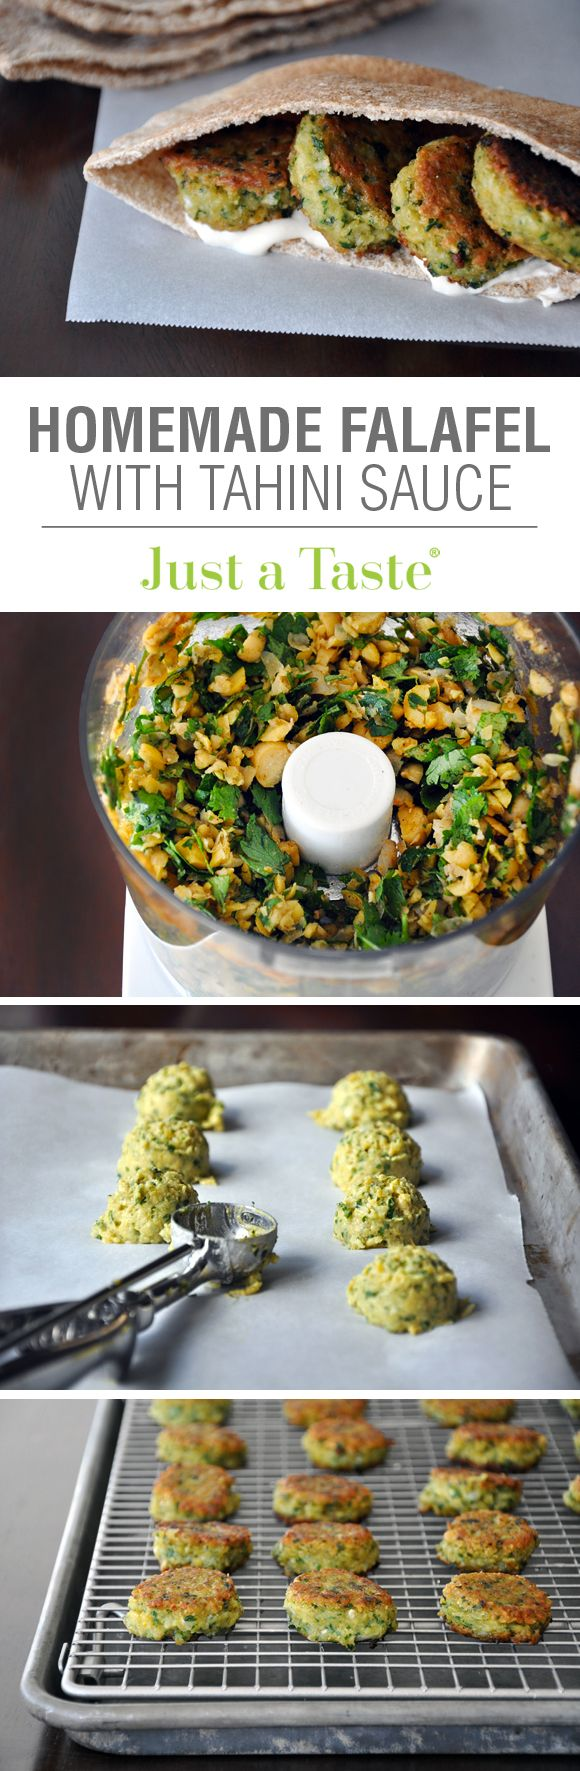 Homemade Falafel with Tahini Sauce #recipe from justataste.com. For GF use gf flour & pitta